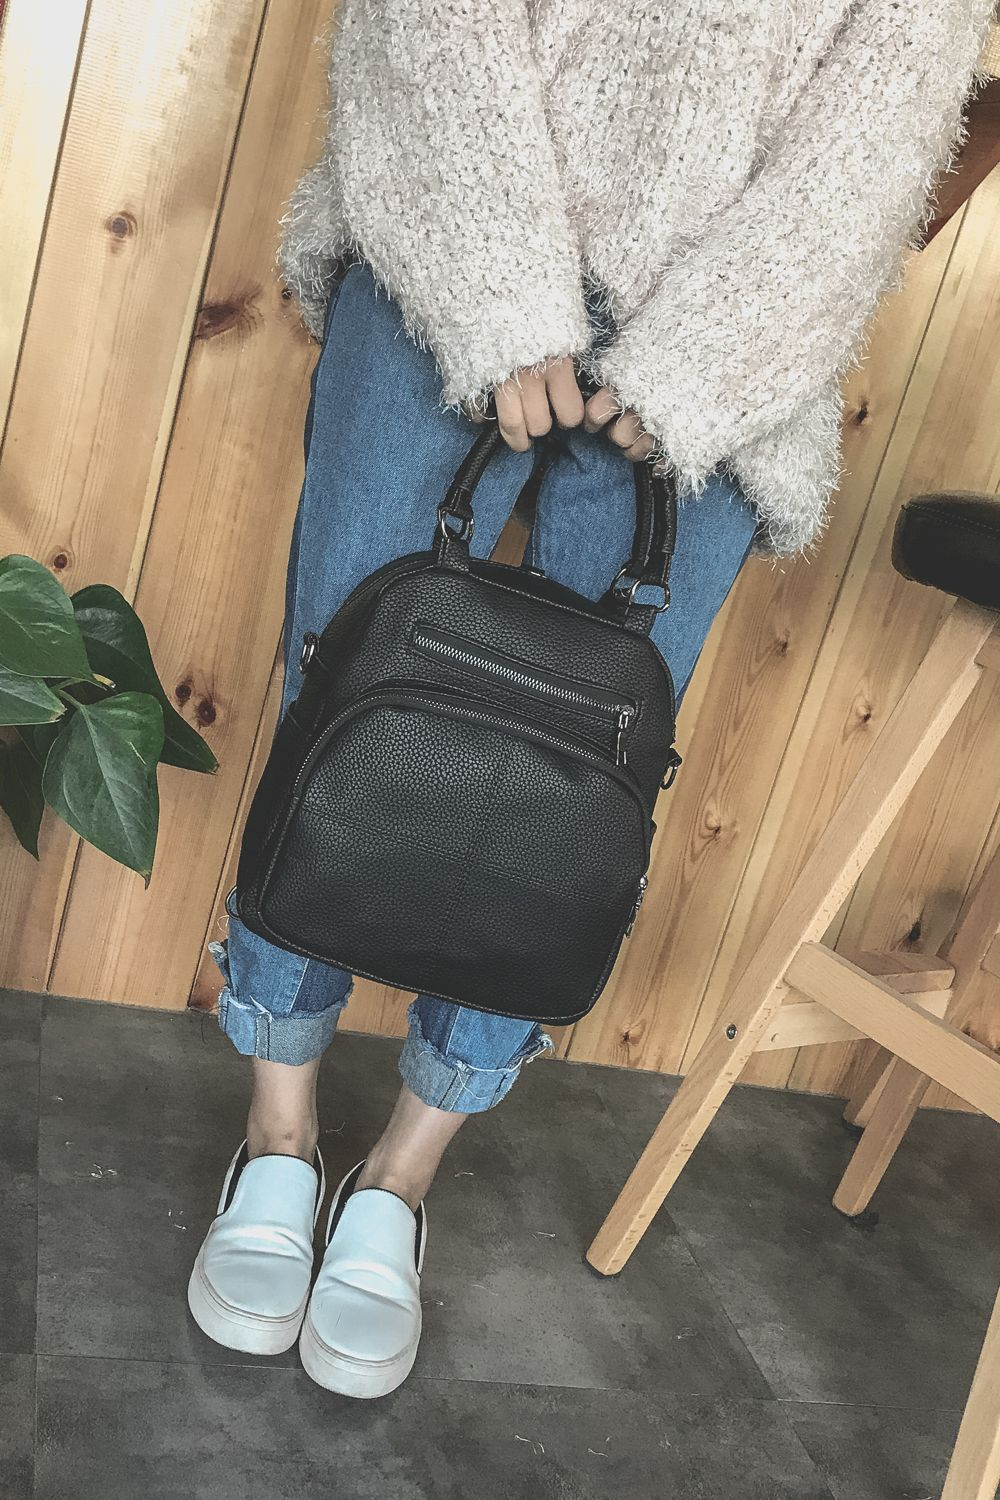 The New Dual Shoulder Bag Women Bag Shoulder Female All-Match Casual 2018PU Leather Backpack Female Tide